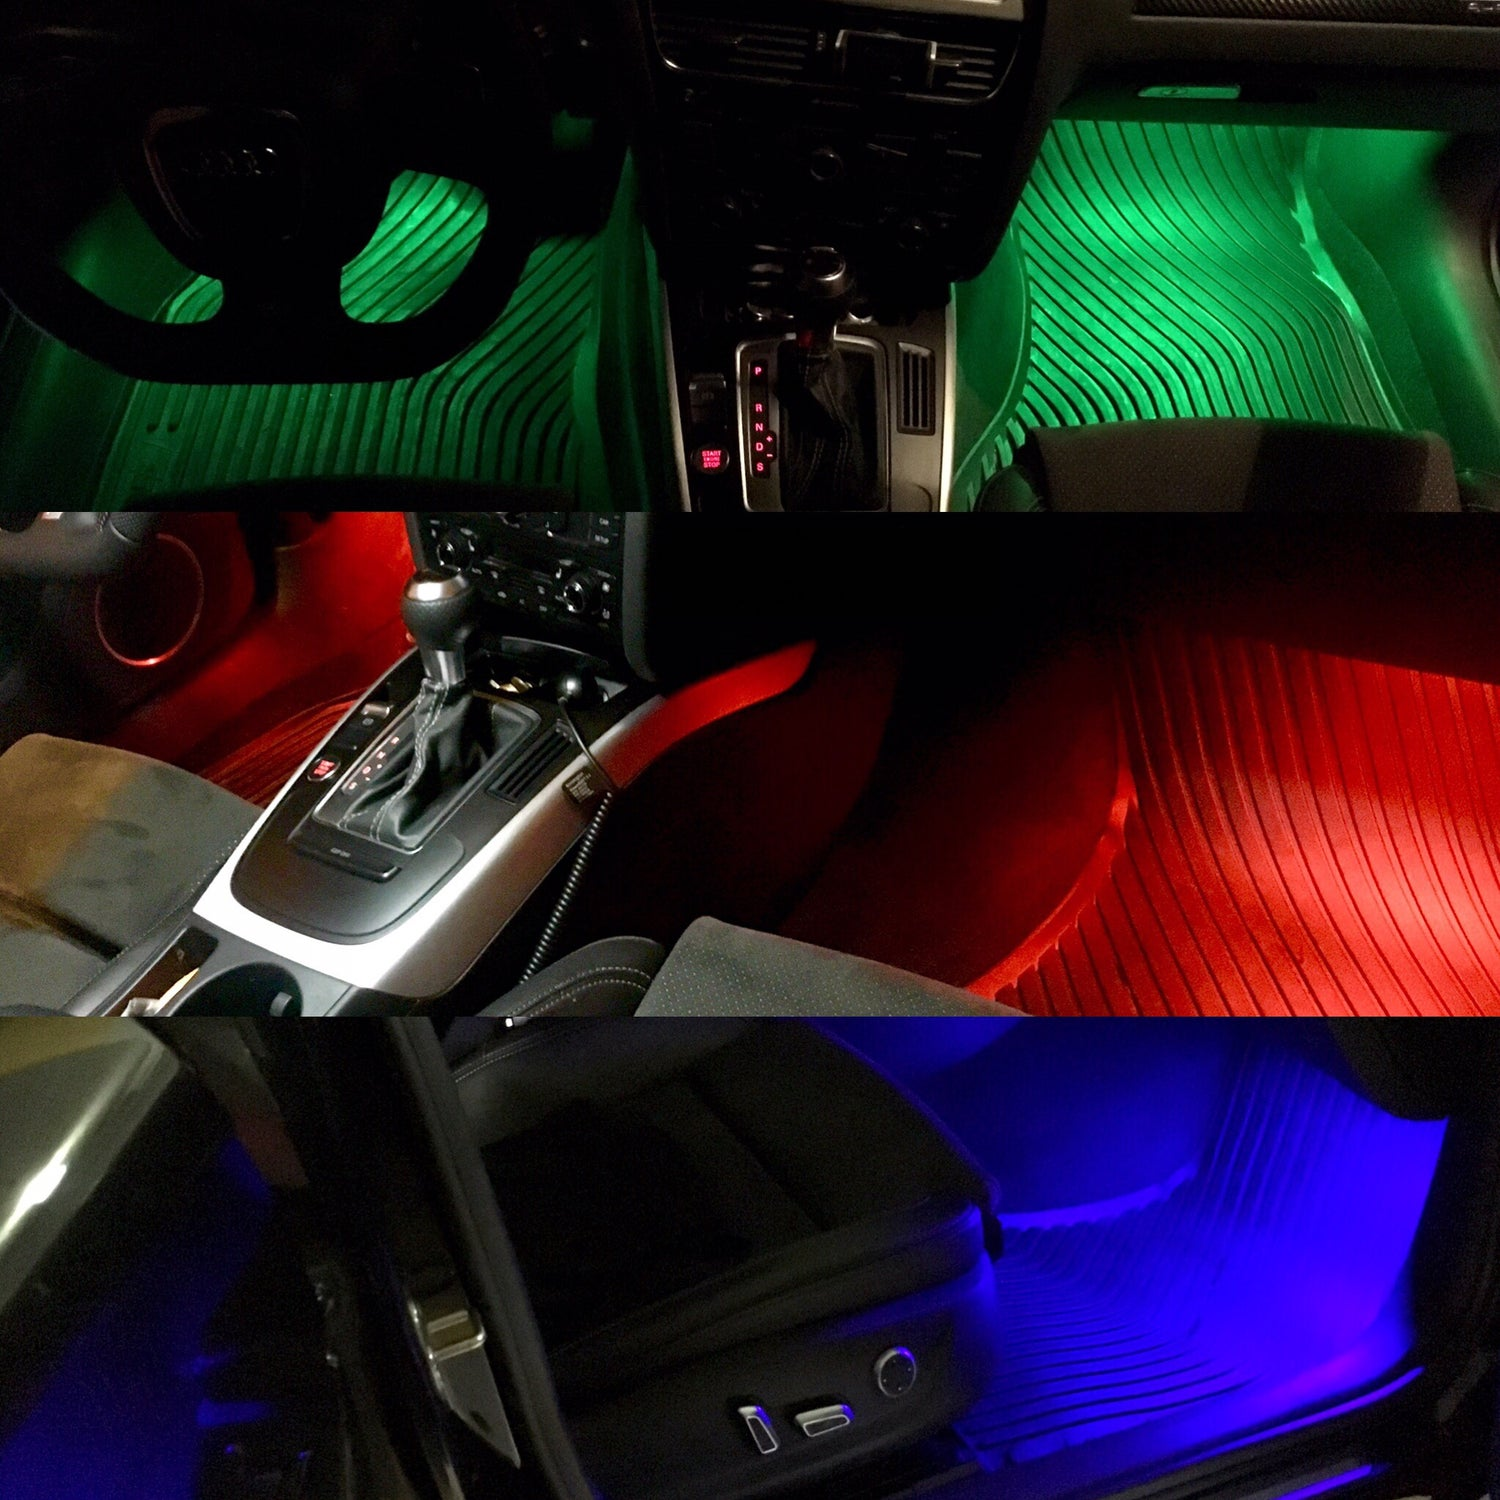 Image of Remote Control Color Changing Footwell LEDs Fits: All Audi & Volkswagen Models